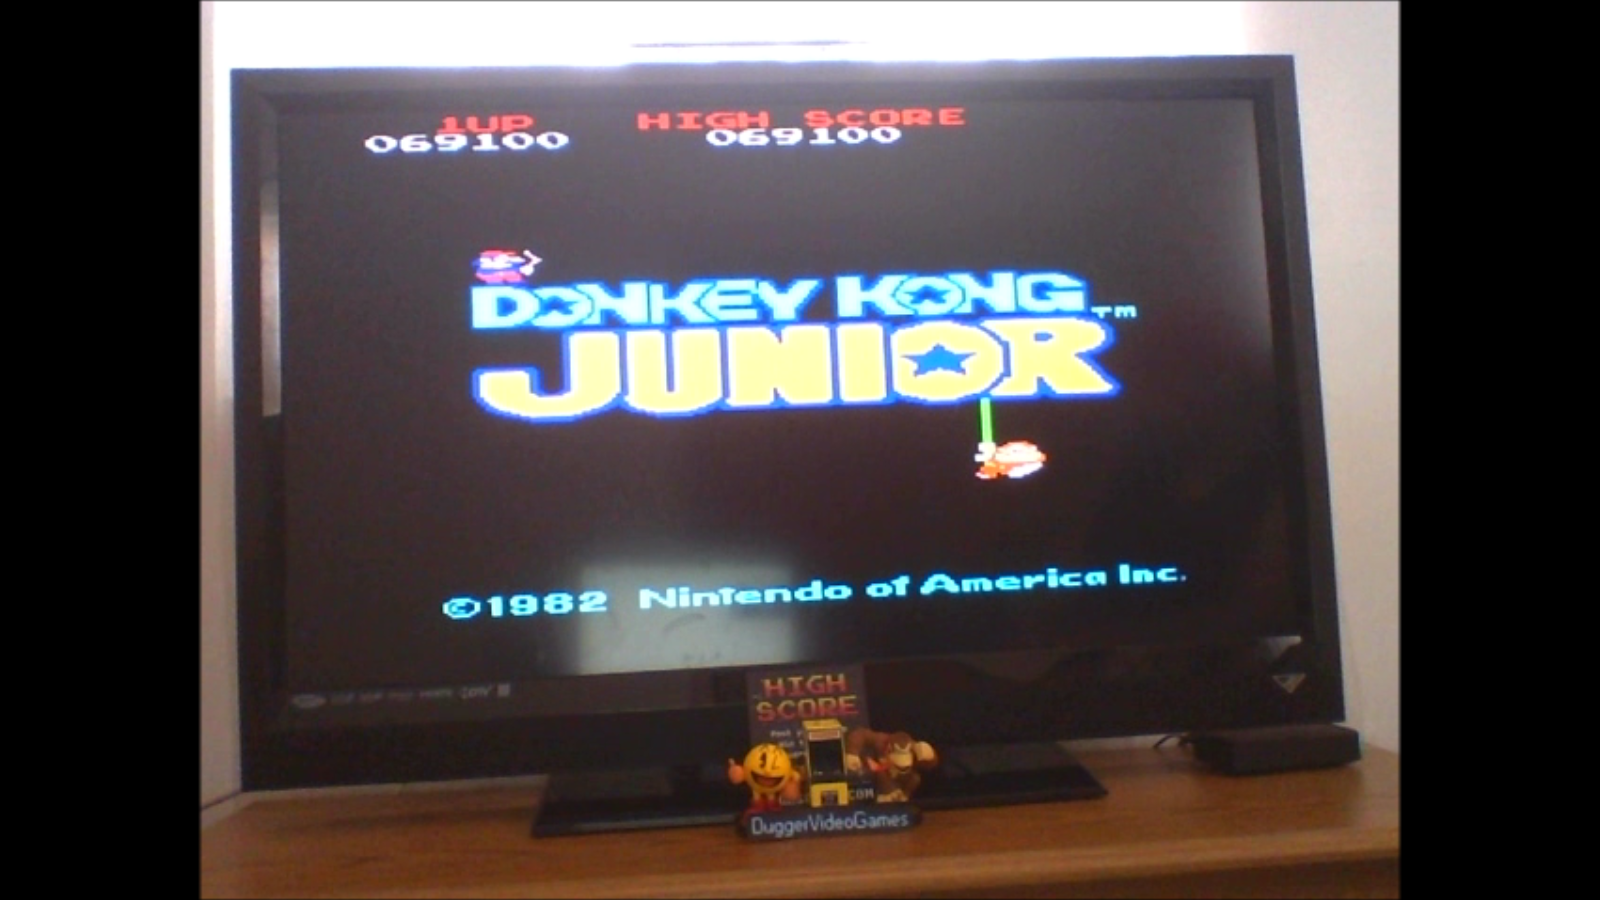 DuggerVideoGames: Donkey Kong Jr (Arcade Emulated / M.A.M.E.) 69,100 points on 2017-03-13 12:20:52